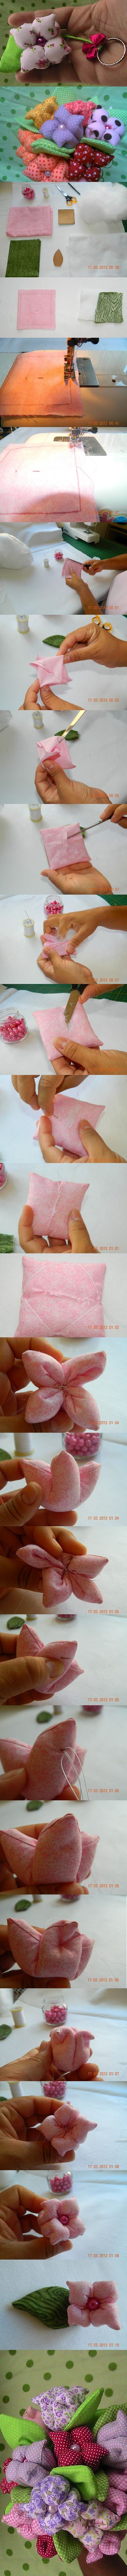 Pretty quilted flowers can be used for lots of things!.(keychains,pincushions,etc) Picture tutorial!